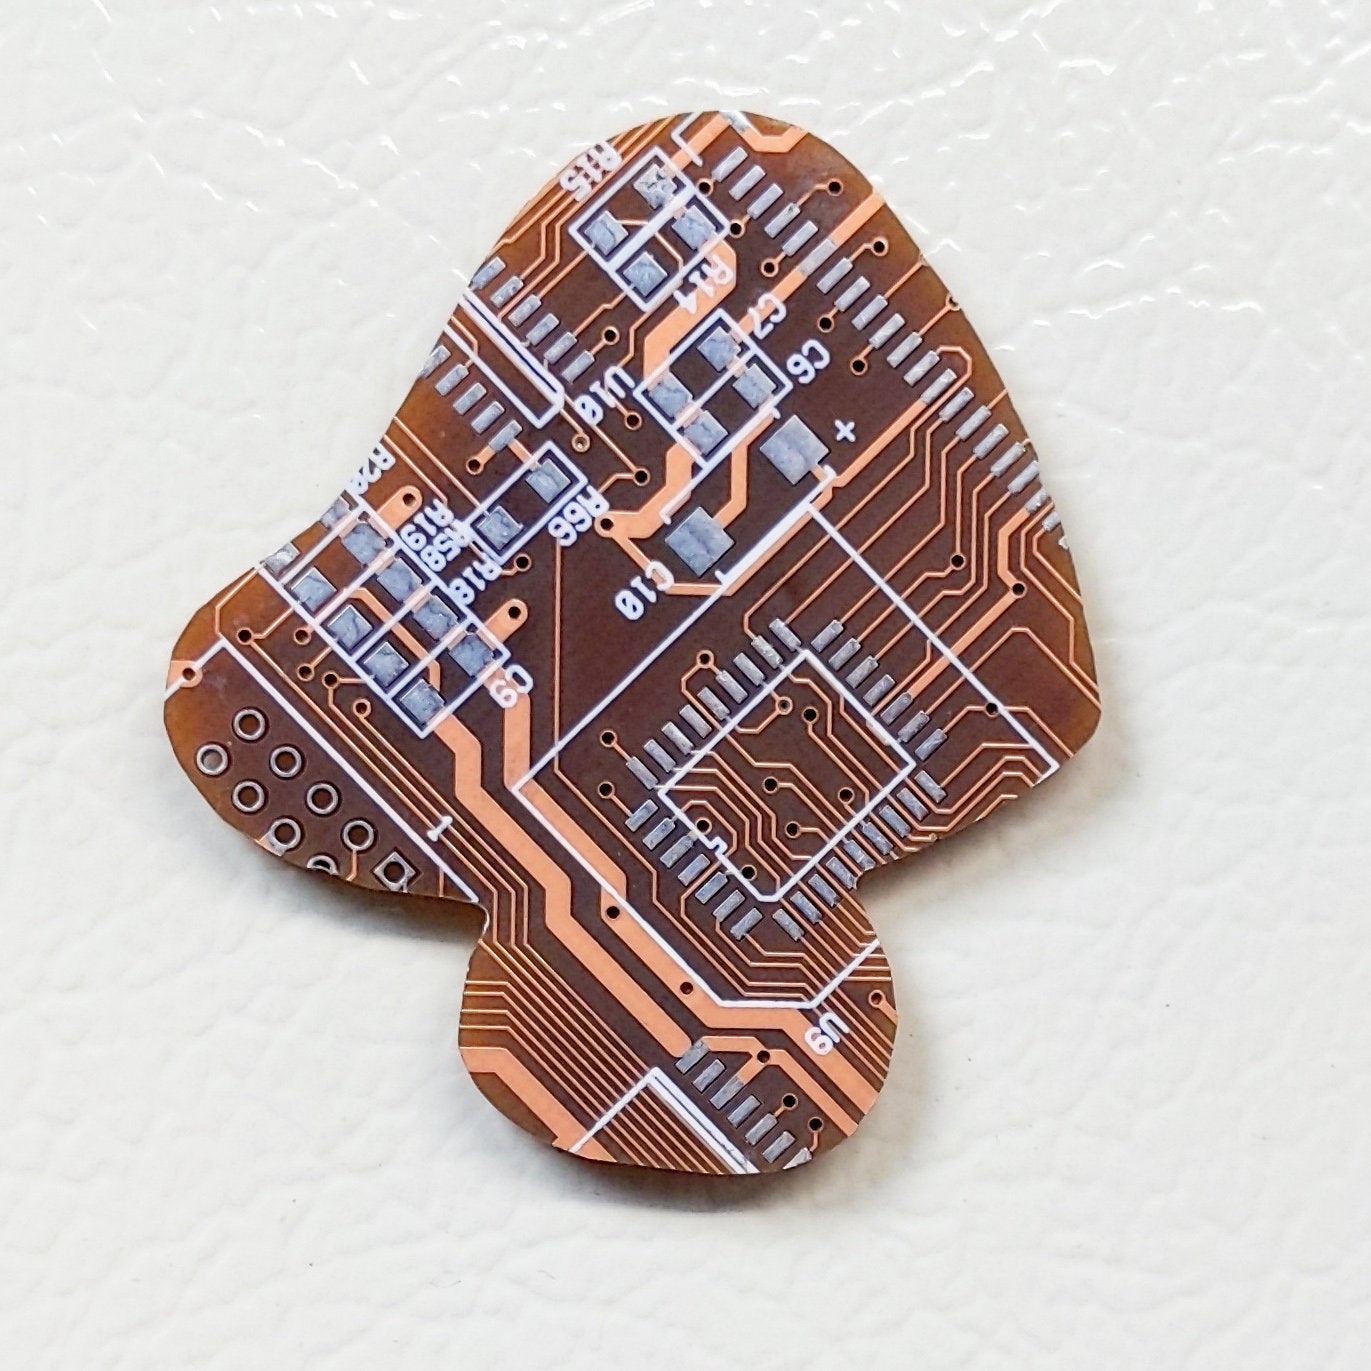 Circuit Board Mushrooms - TechWears Ltd